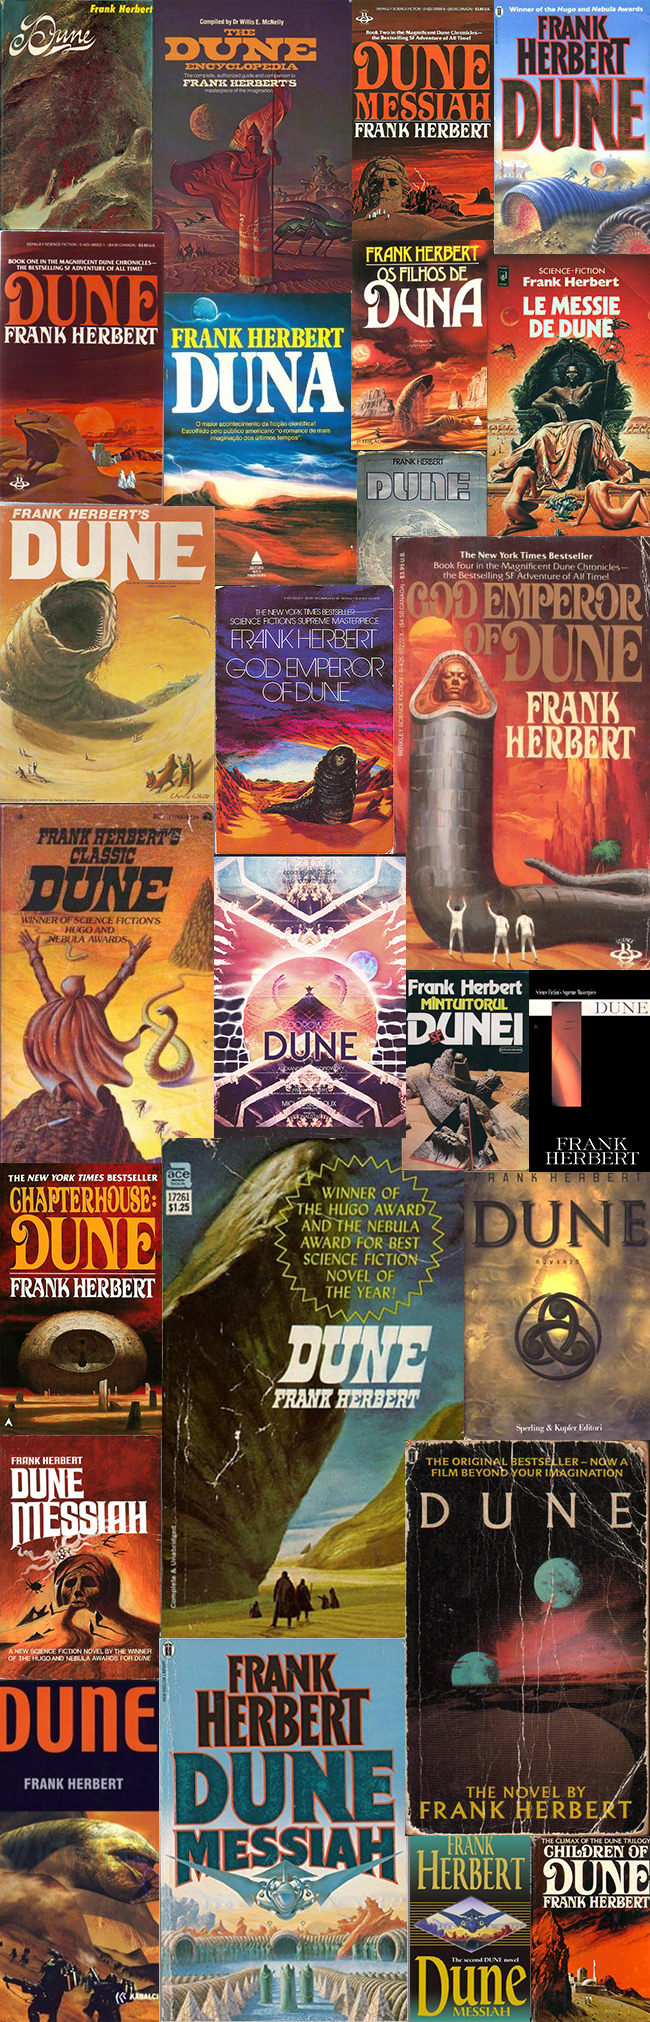 Dune book series, New English Library 6